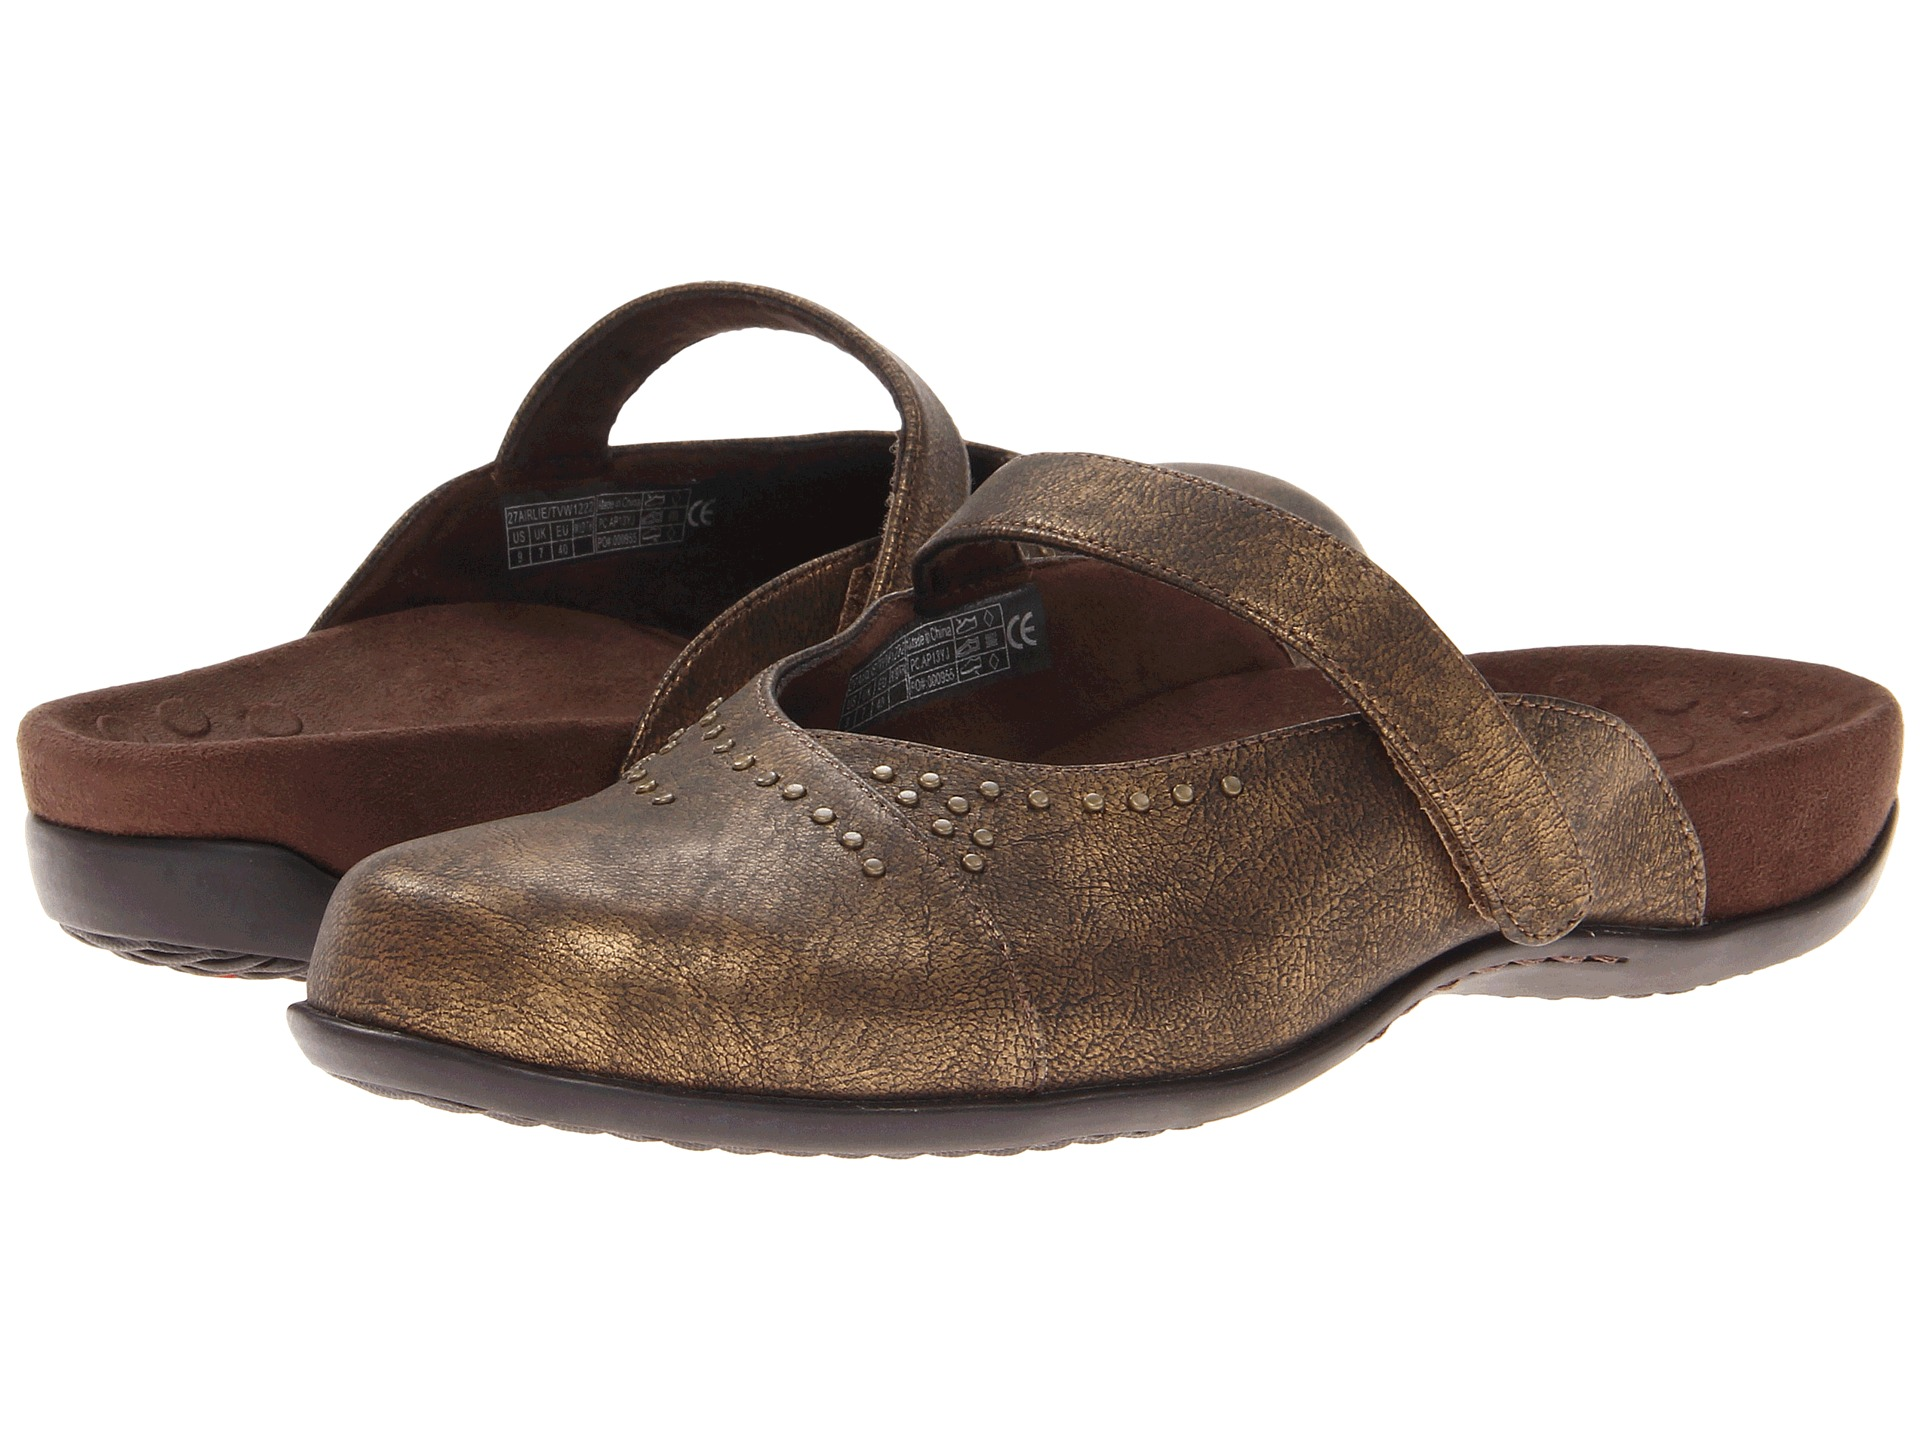 Vionic With Orthaheel Technology Airlie Mule Shoes Shipped Free At